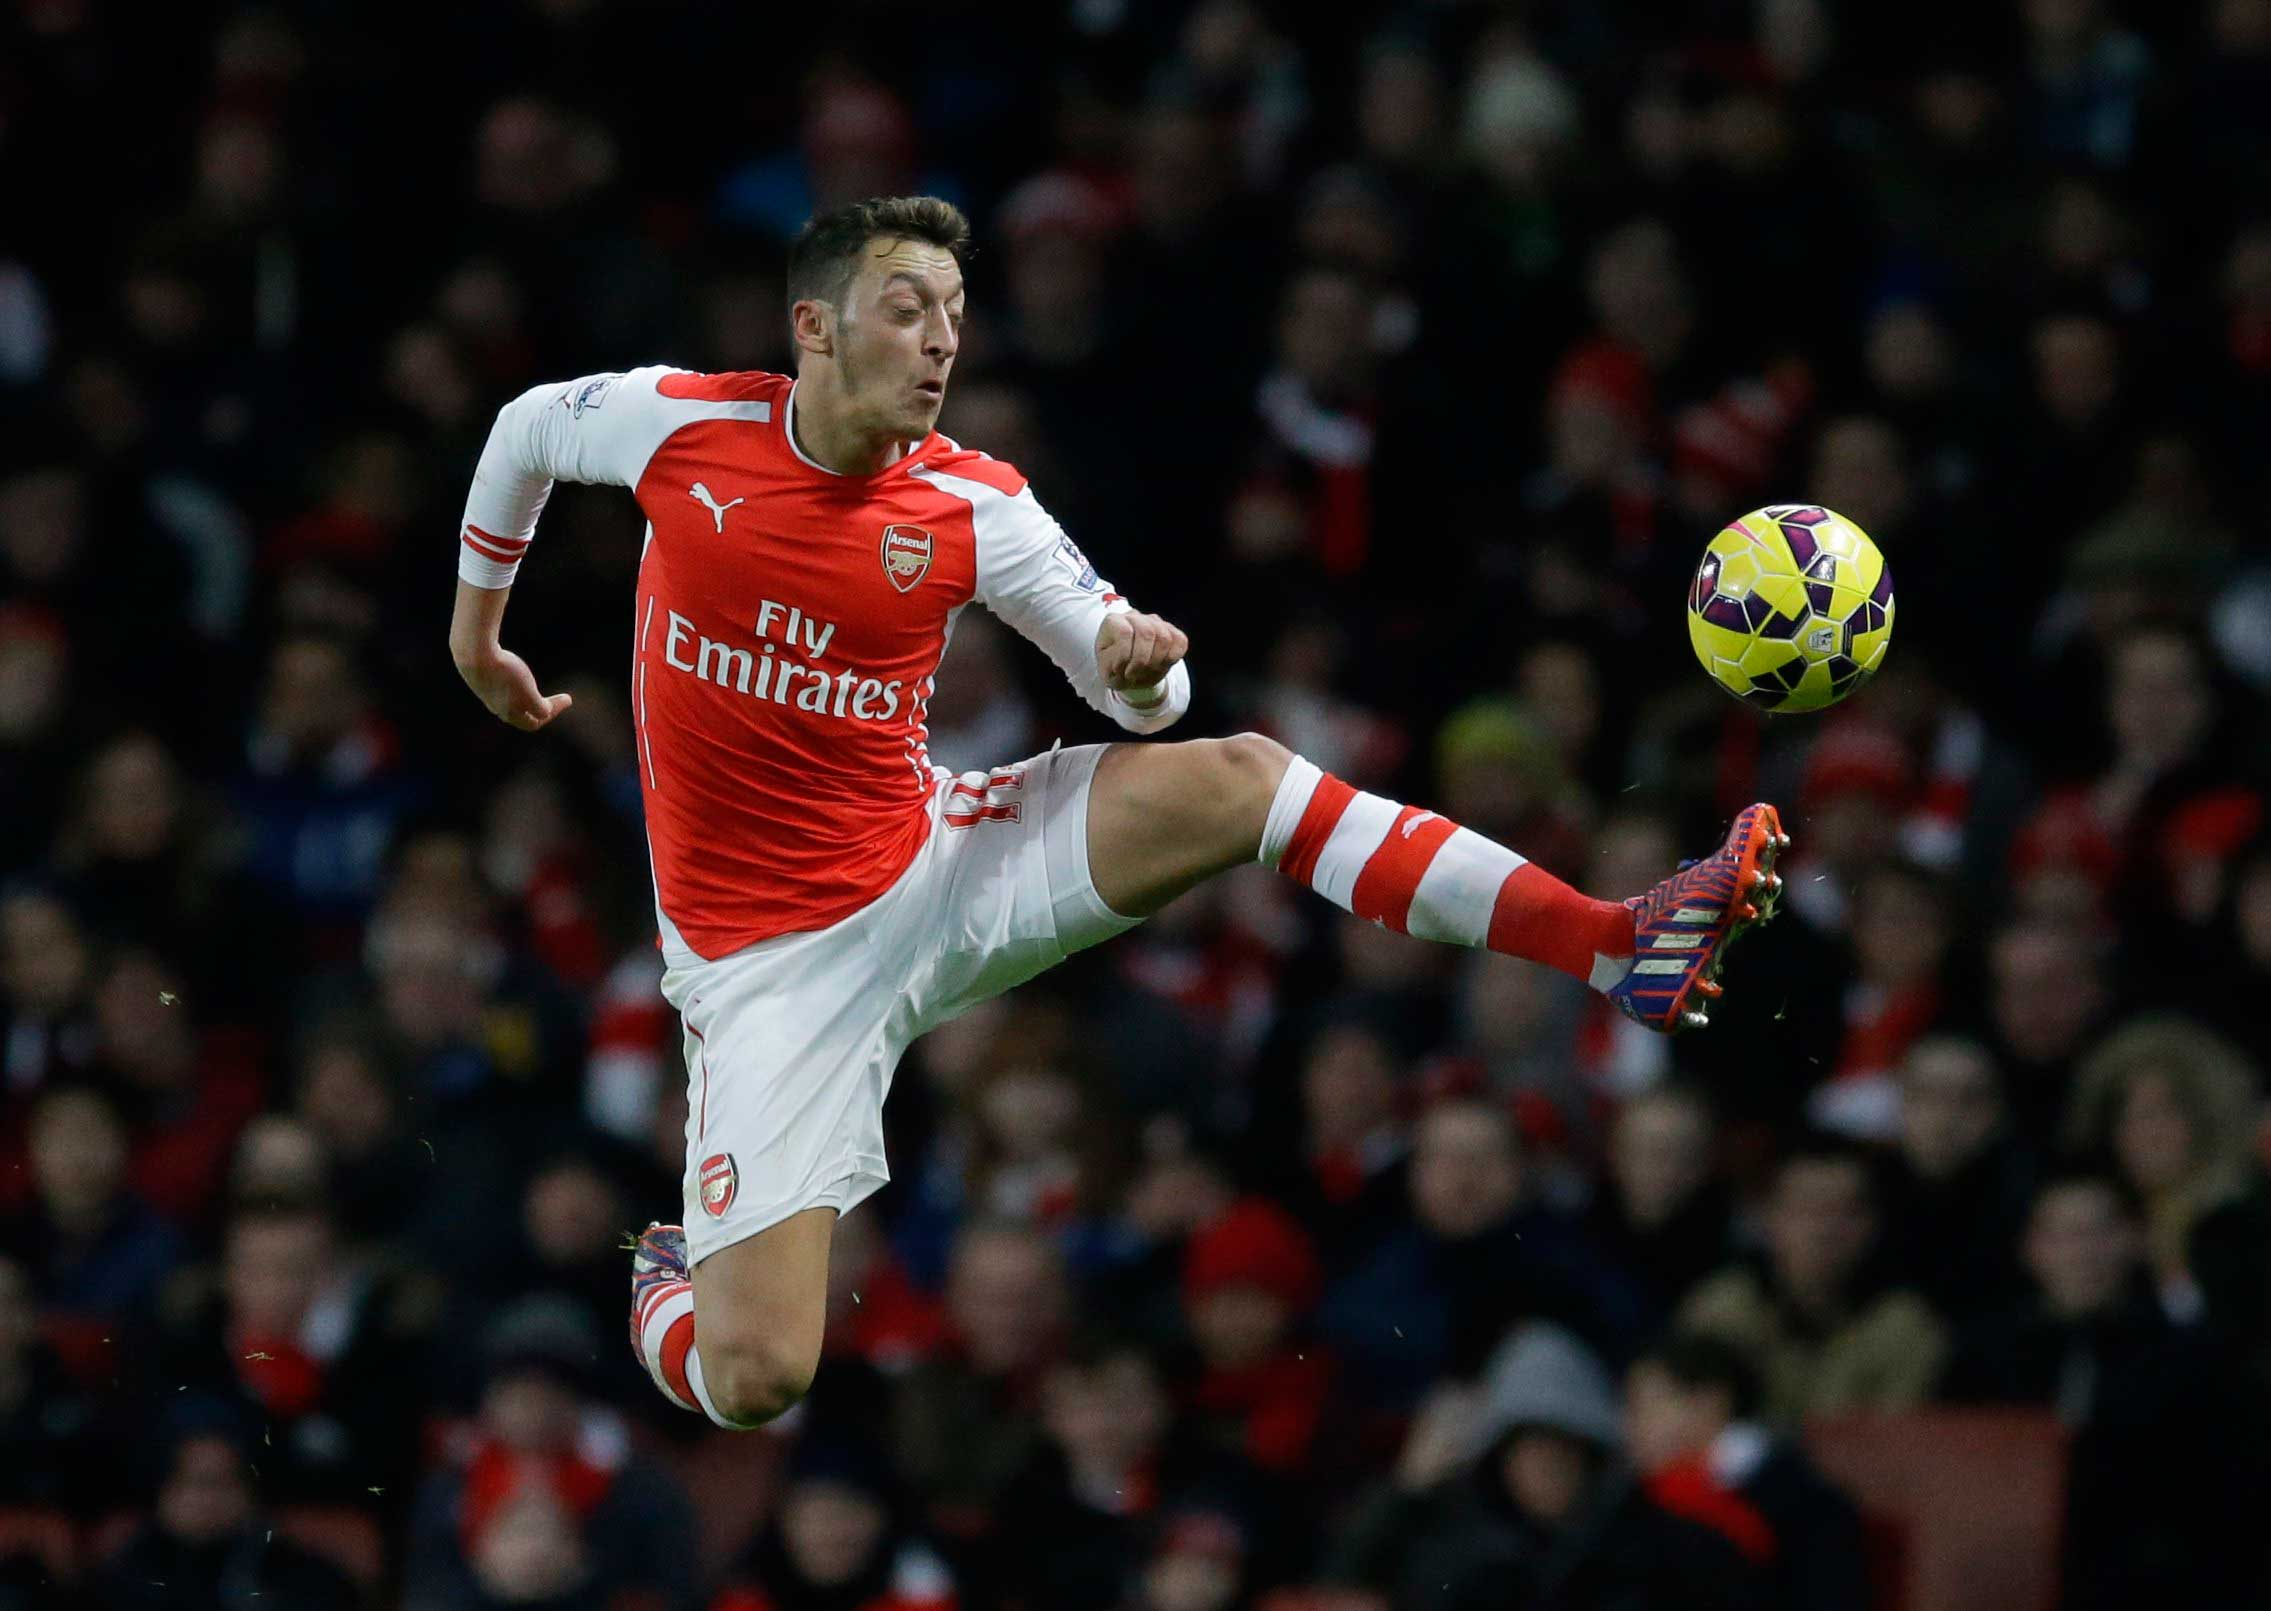 Arsenal's Mesut Ozil controls the ball during the English Premier League soccer match between Arsenal and Leicester City at the Emirates Stadium in London,  Feb. 10, 2015.